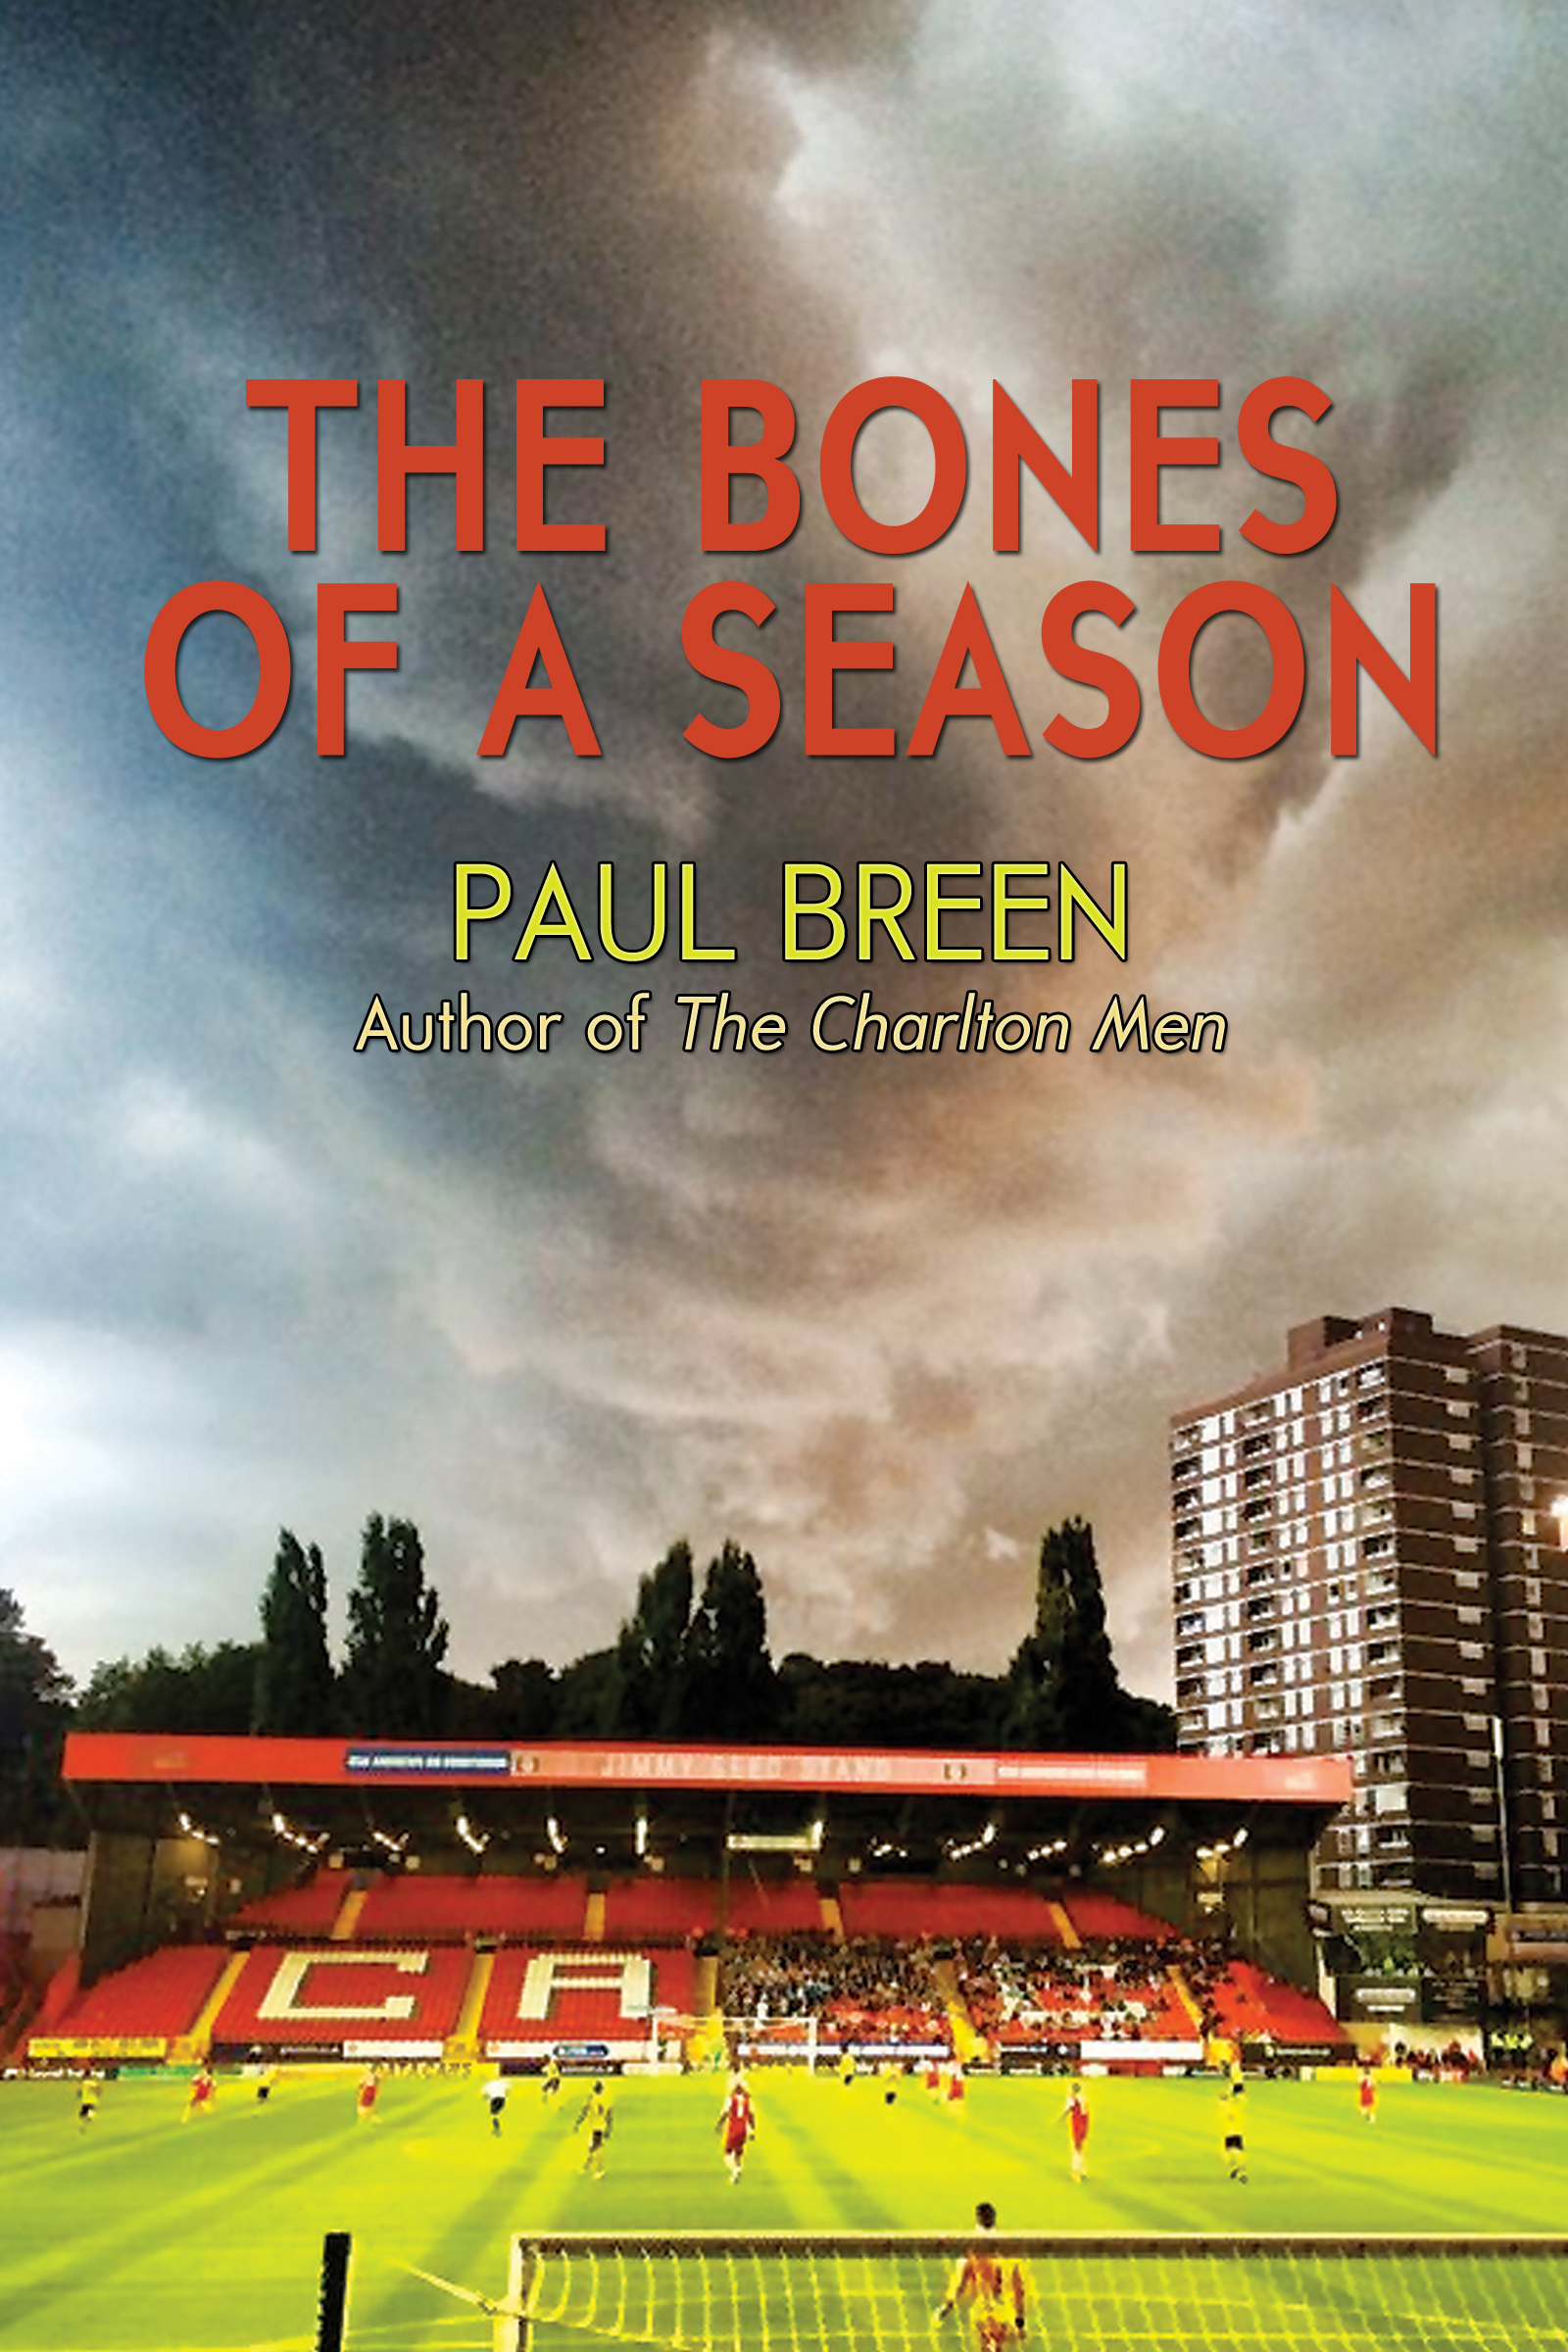 THE BONES OF A SEASON by Paul Breen